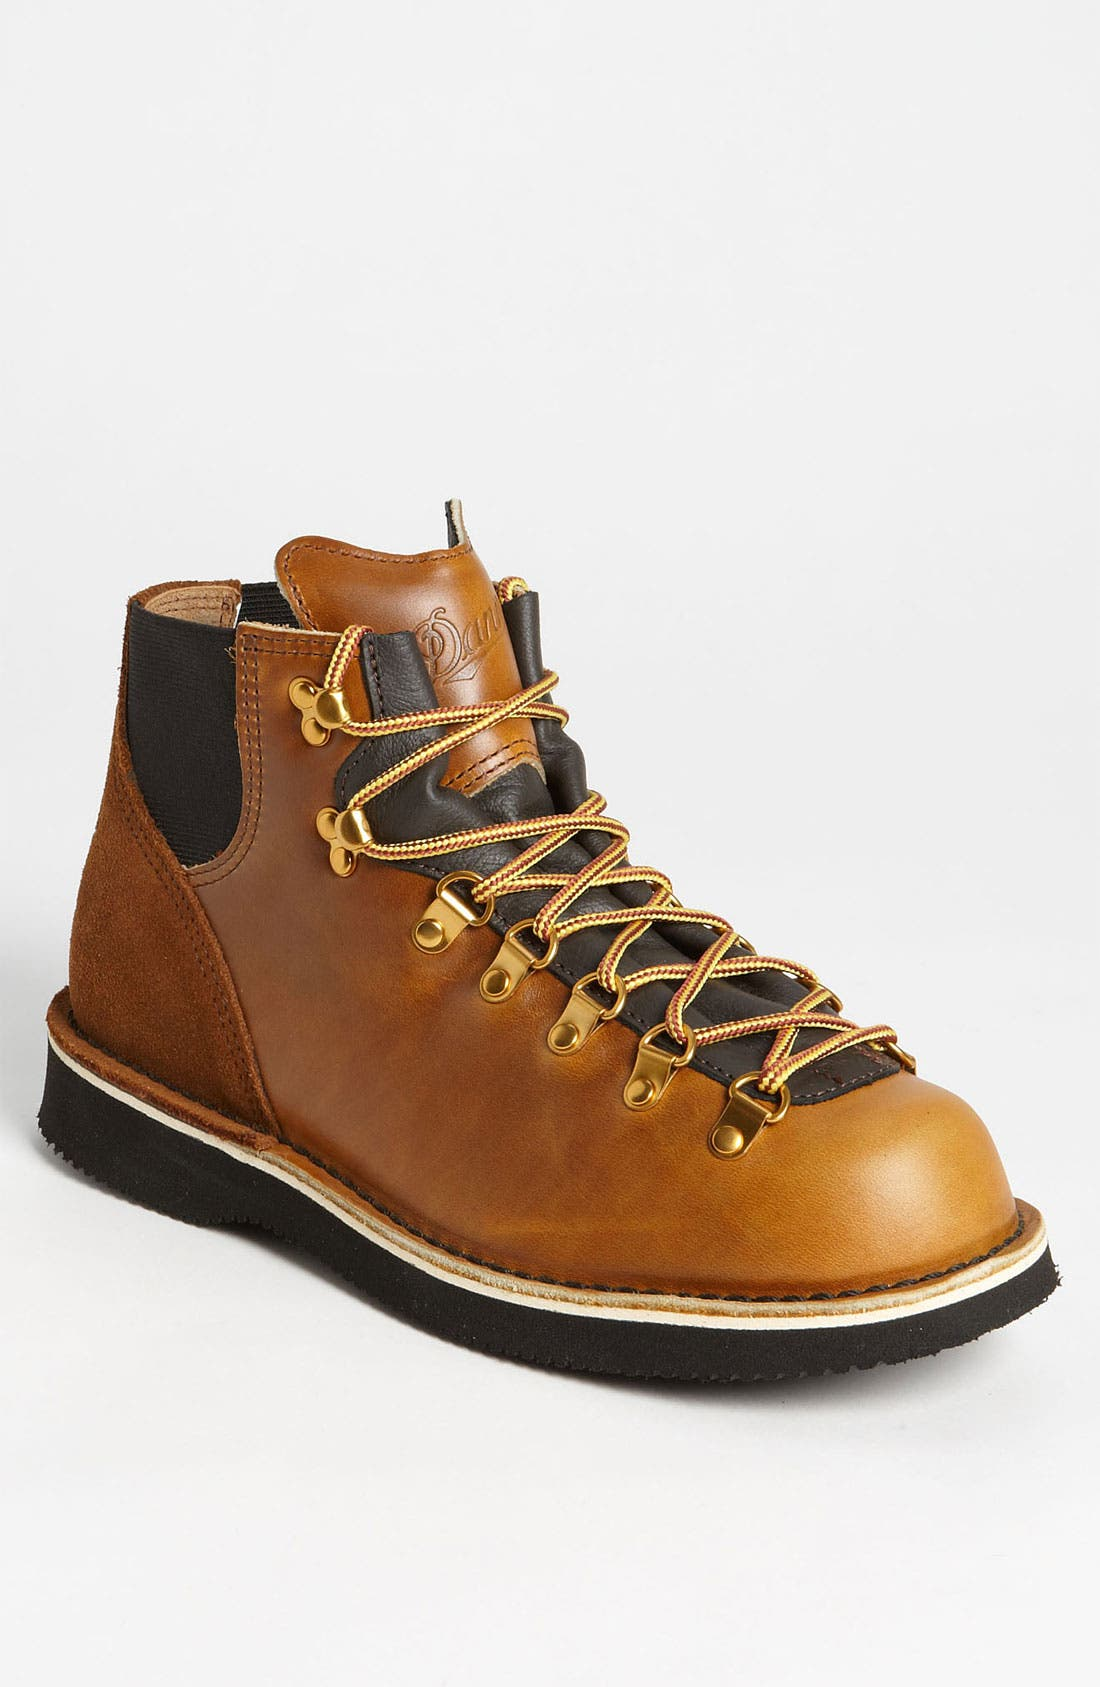 Alternate Image 1 Selected - Danner 'Vertigo - 1845' Round Toe Boot